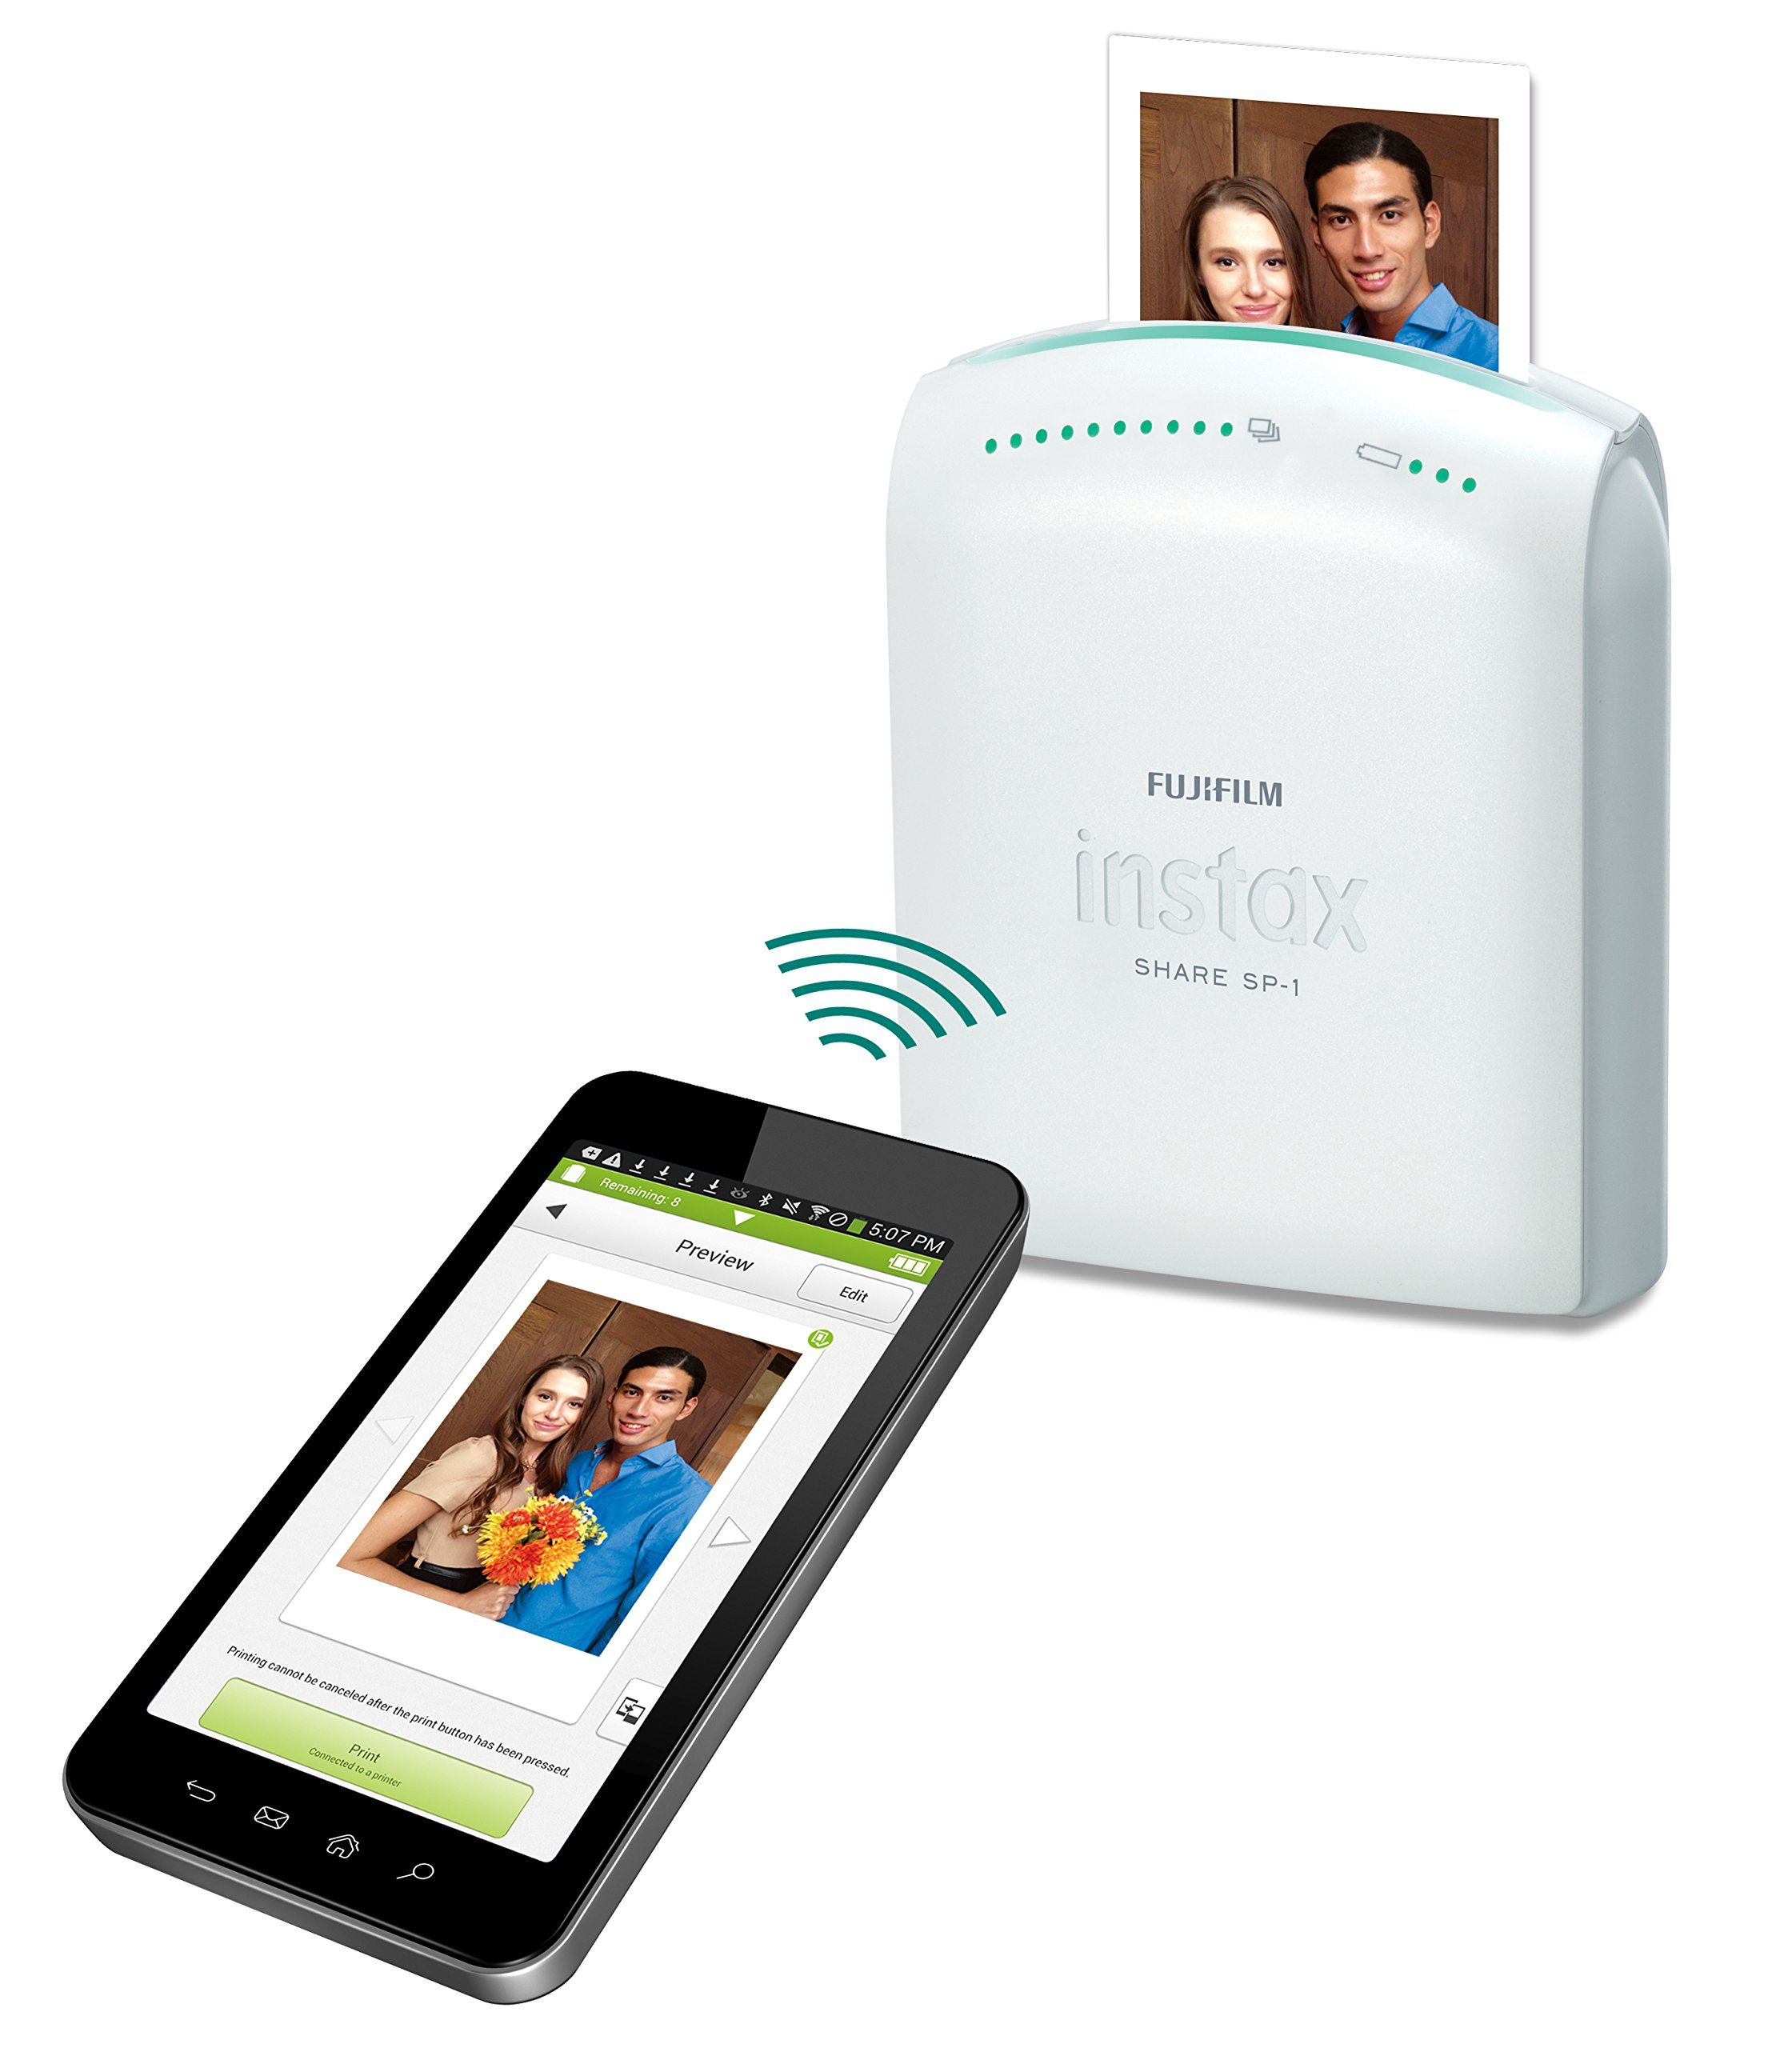 Fujifilm Instax Share Smartphone Printer SP1